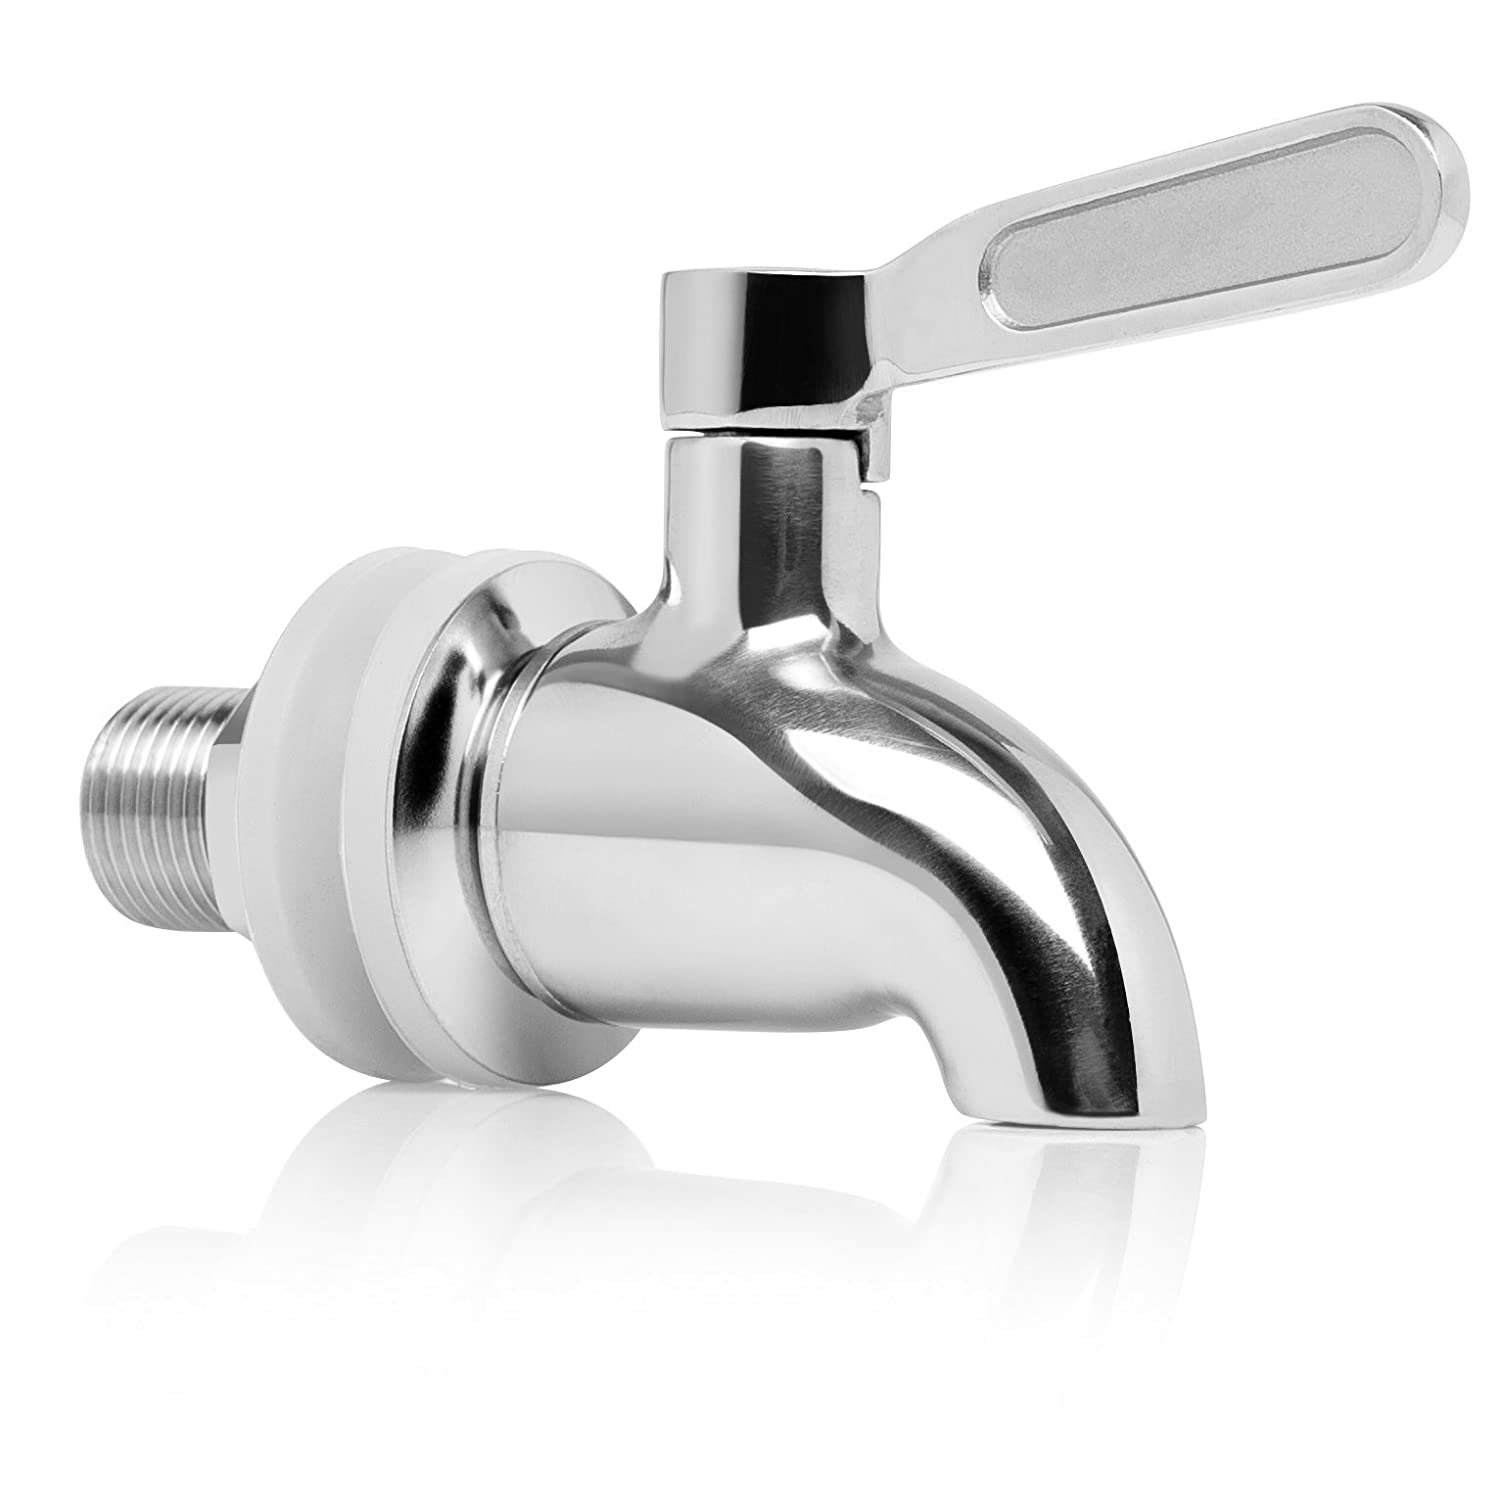 Brew Tapper Solid Stainless Steel Beverage Dispenser Replacement Spigot (Polished Finish)